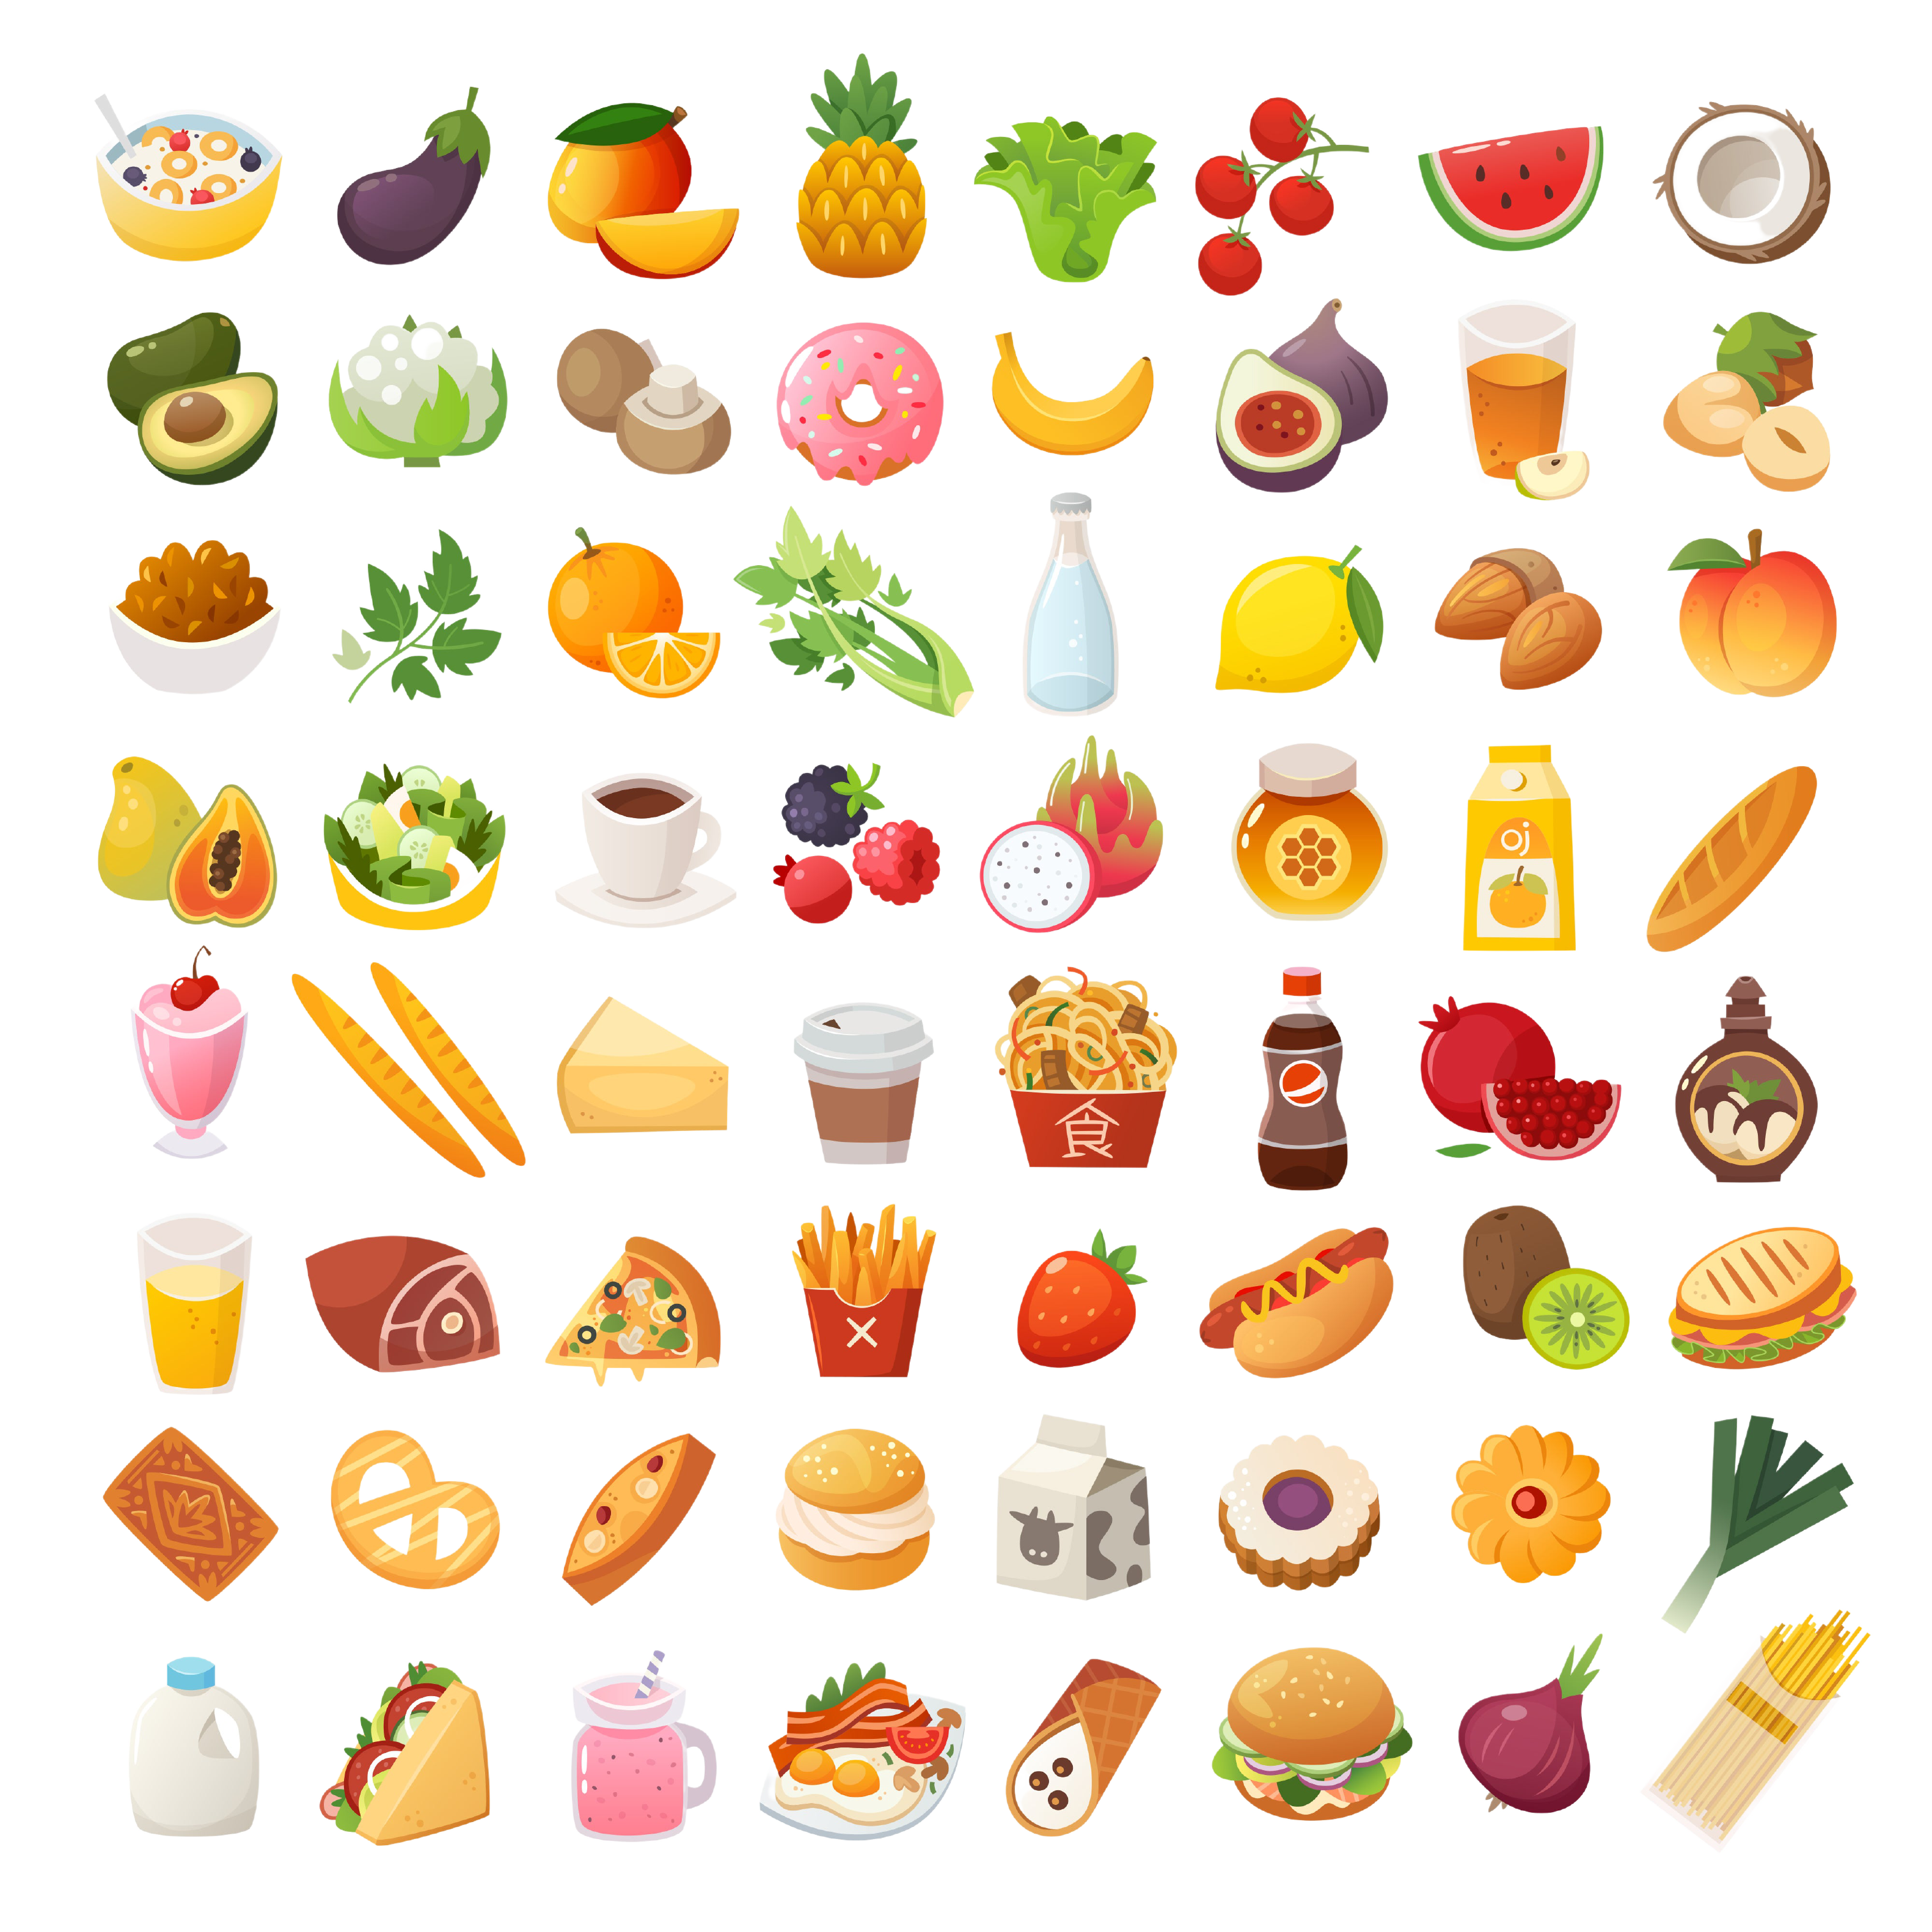 Set of colorful food icons. Bakery, dairy food, fruit and vegetables. Desserts fast food and pasta images. Isolated vector cartoon icons on white background.